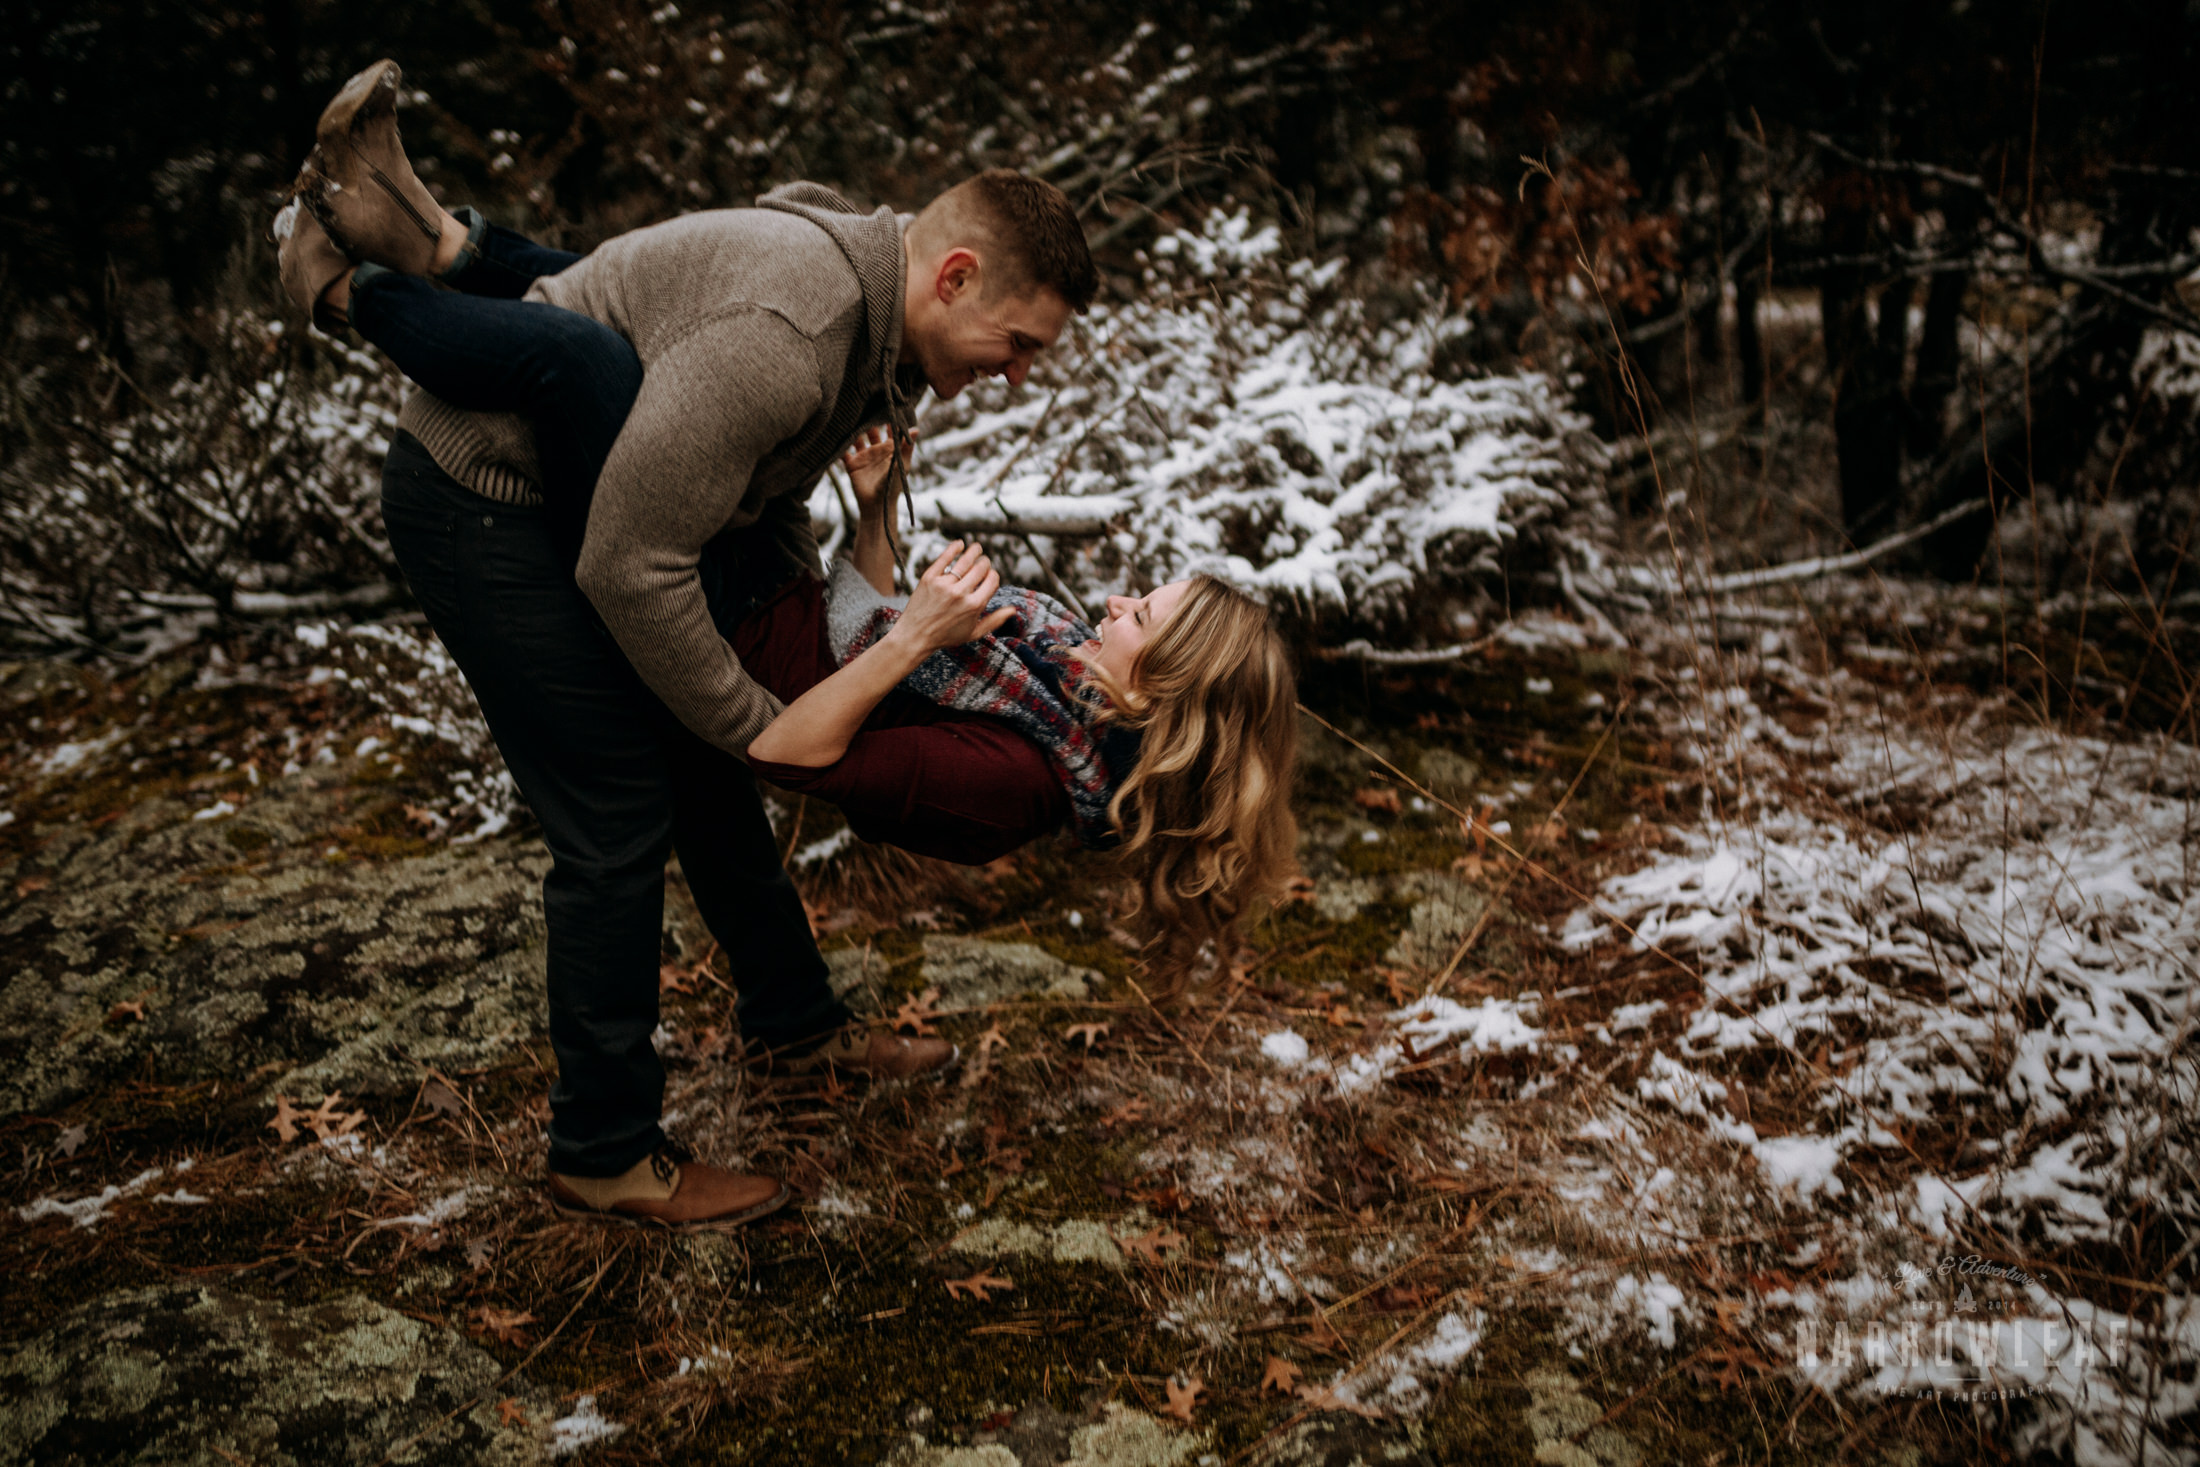 wisconsin-winter-adventure-engagement-in-the-woods-Narrowleaf_Love_and_Adventure_Photography-0331.jpg